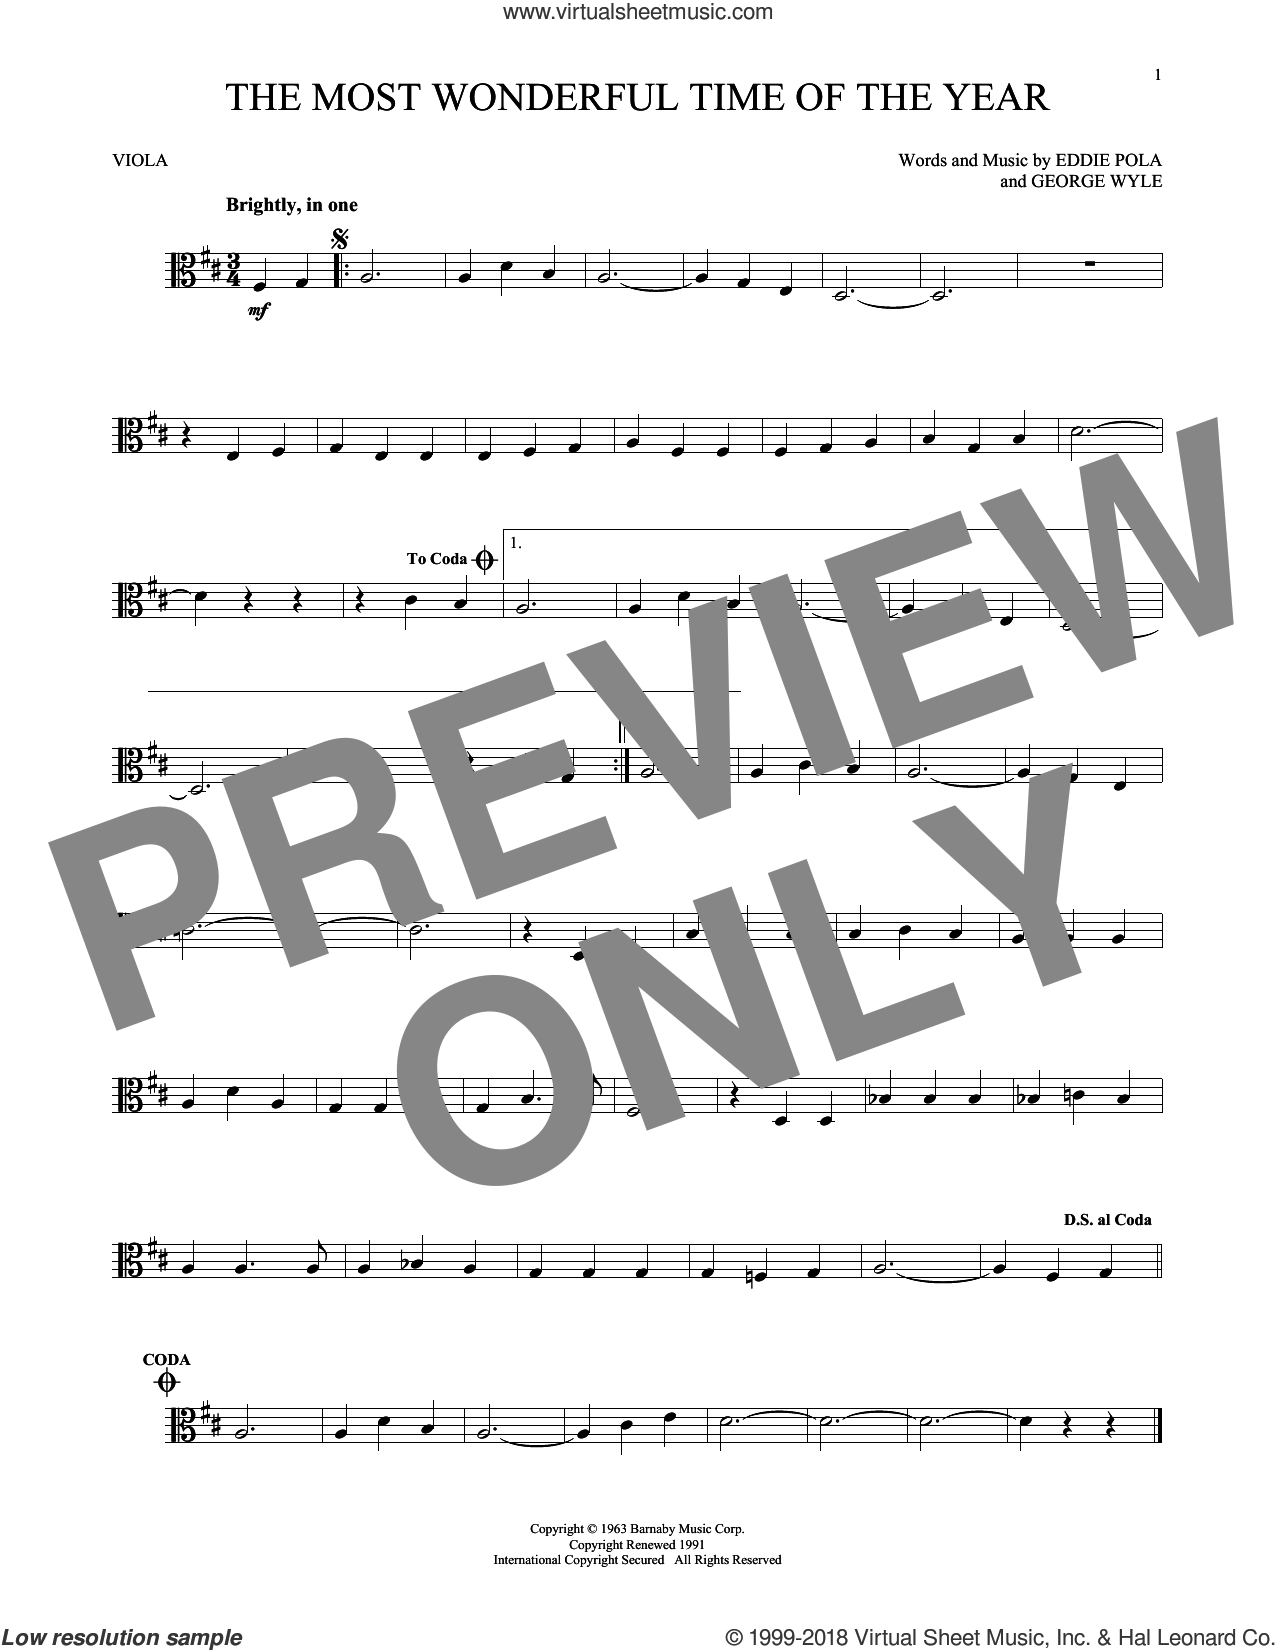 The Most Wonderful Time Of The Year sheet music for viola solo by George Wyle, Andy Williams, Eddie Pola and George Wyle & Eddie Pola, intermediate skill level